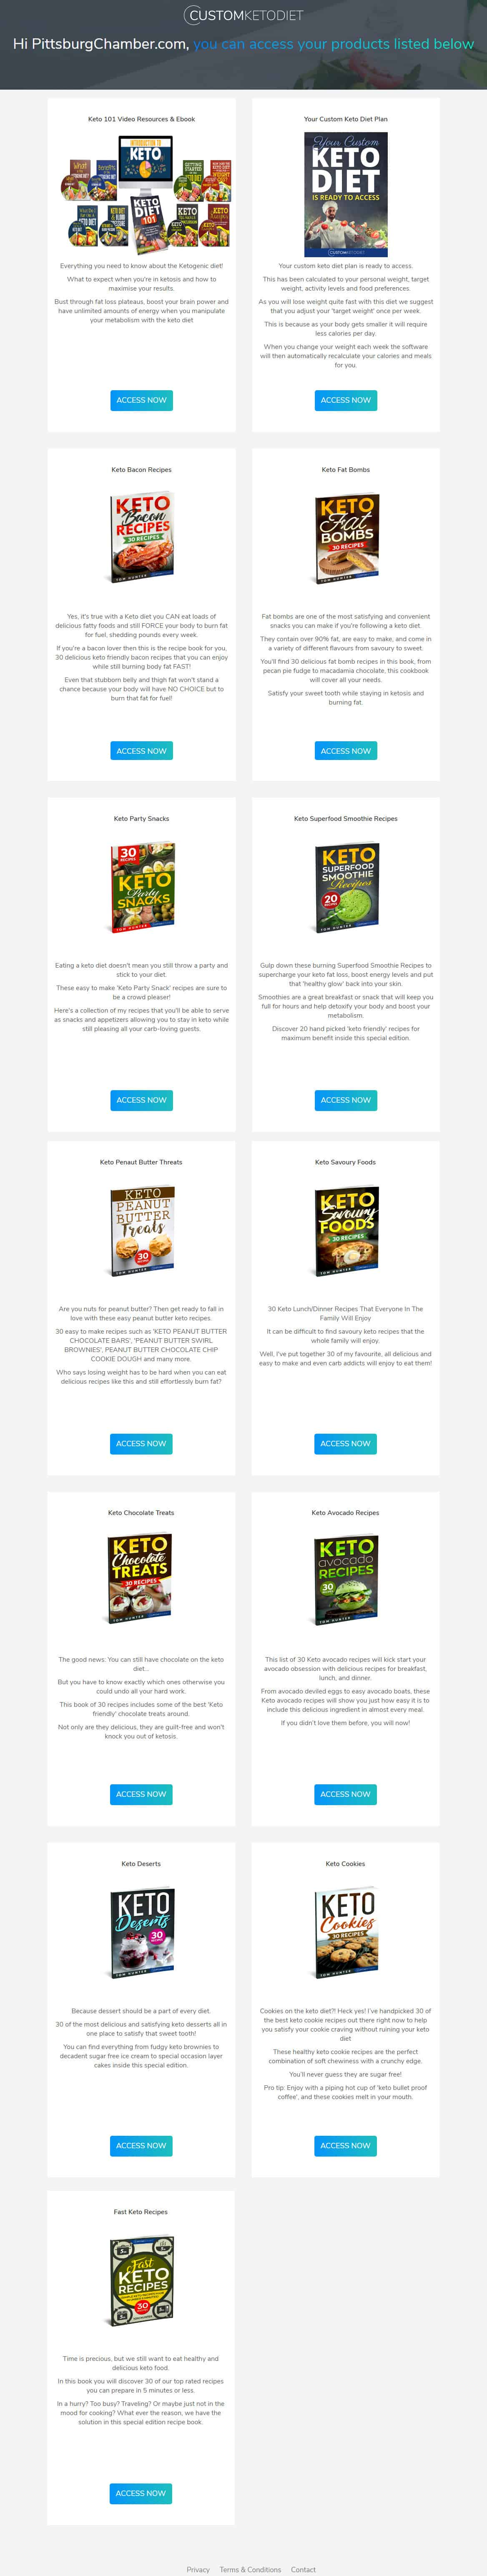 8 Week Custom Keto Diet Plan Download Page